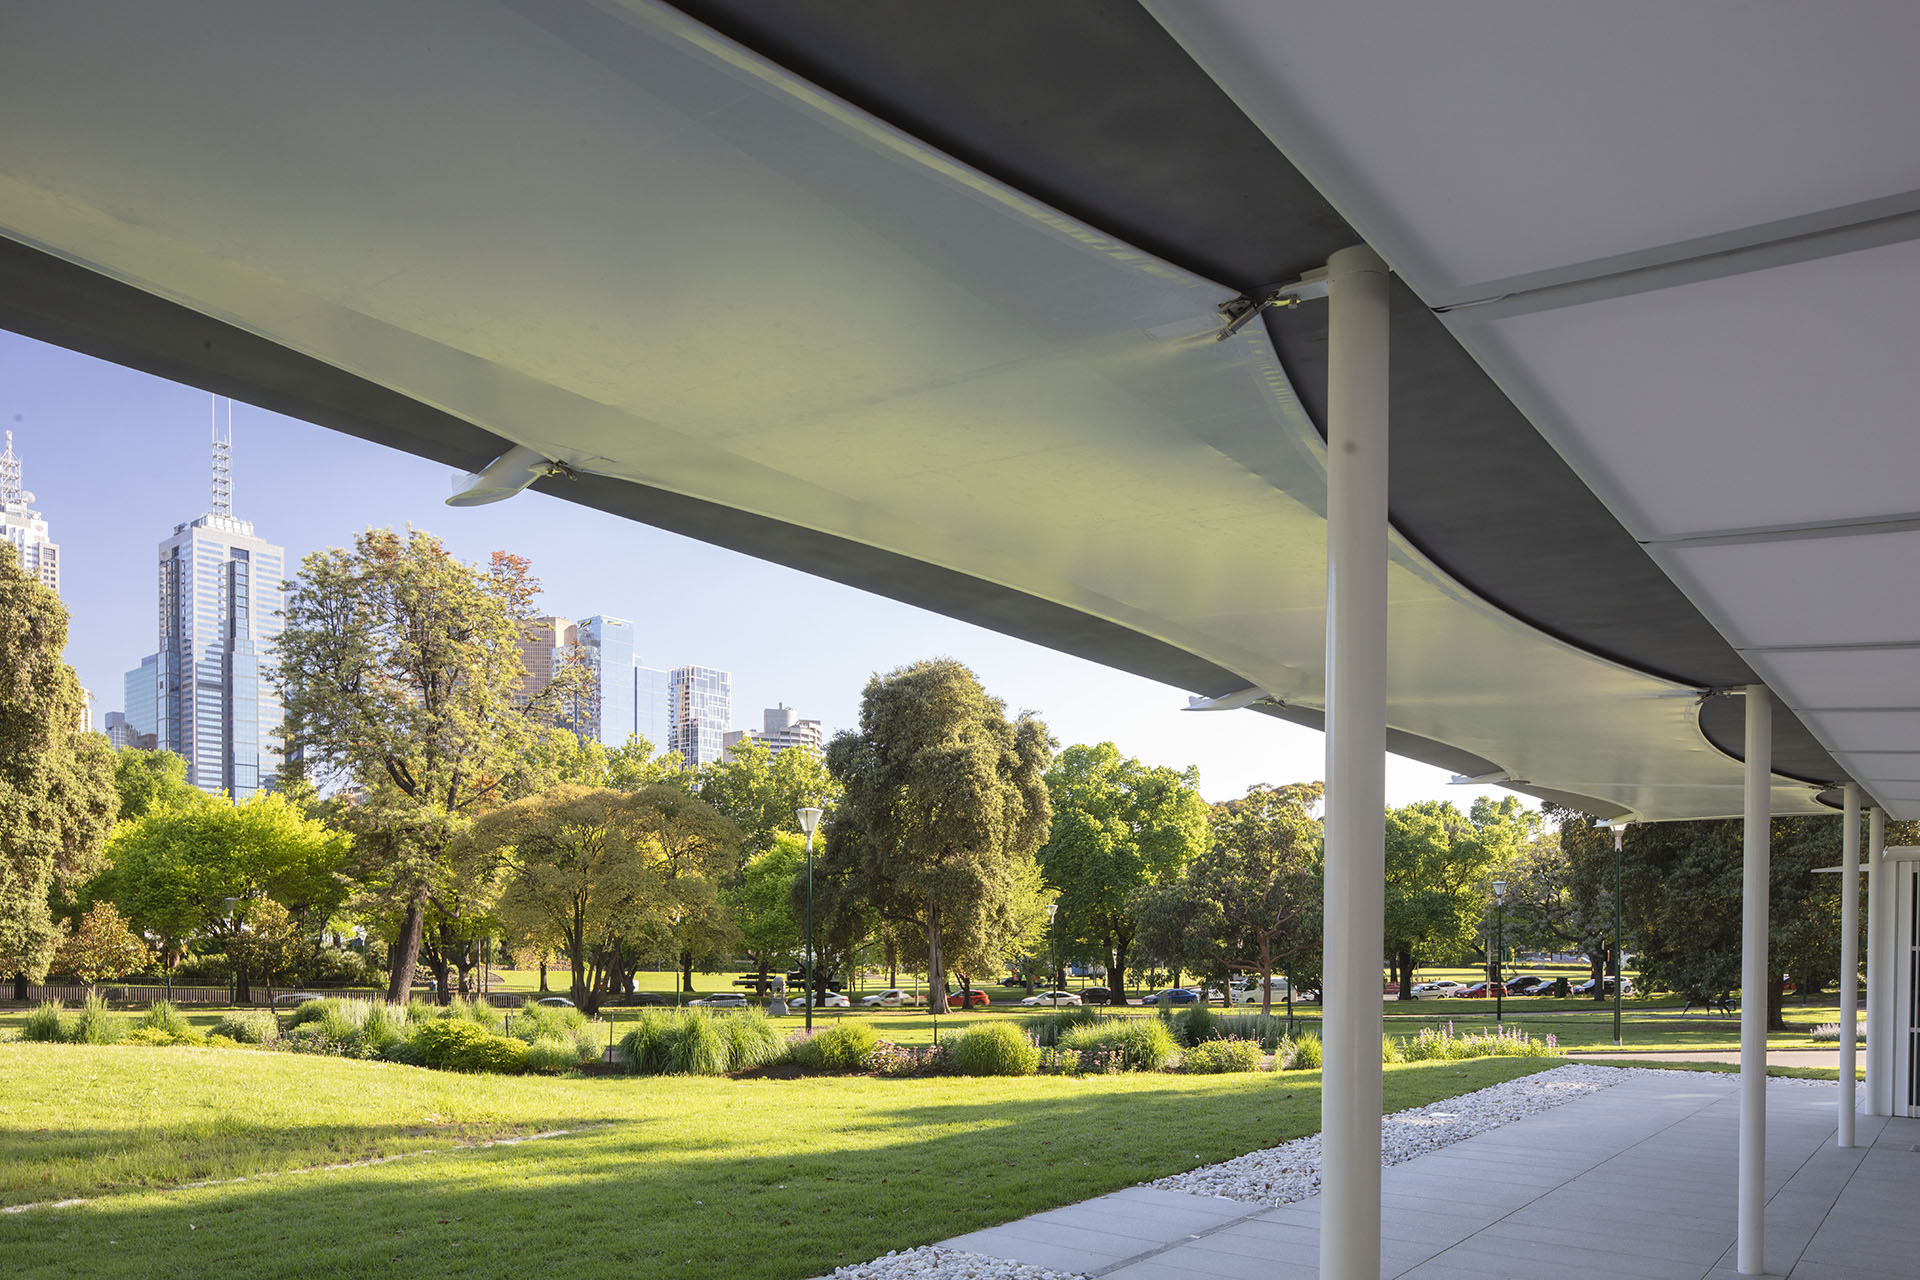 The roof provides shade in summer, while providing a view of the gardens to the river and the city | MPavilion 2019| Australia | Glenn Murcutt| STIRworld